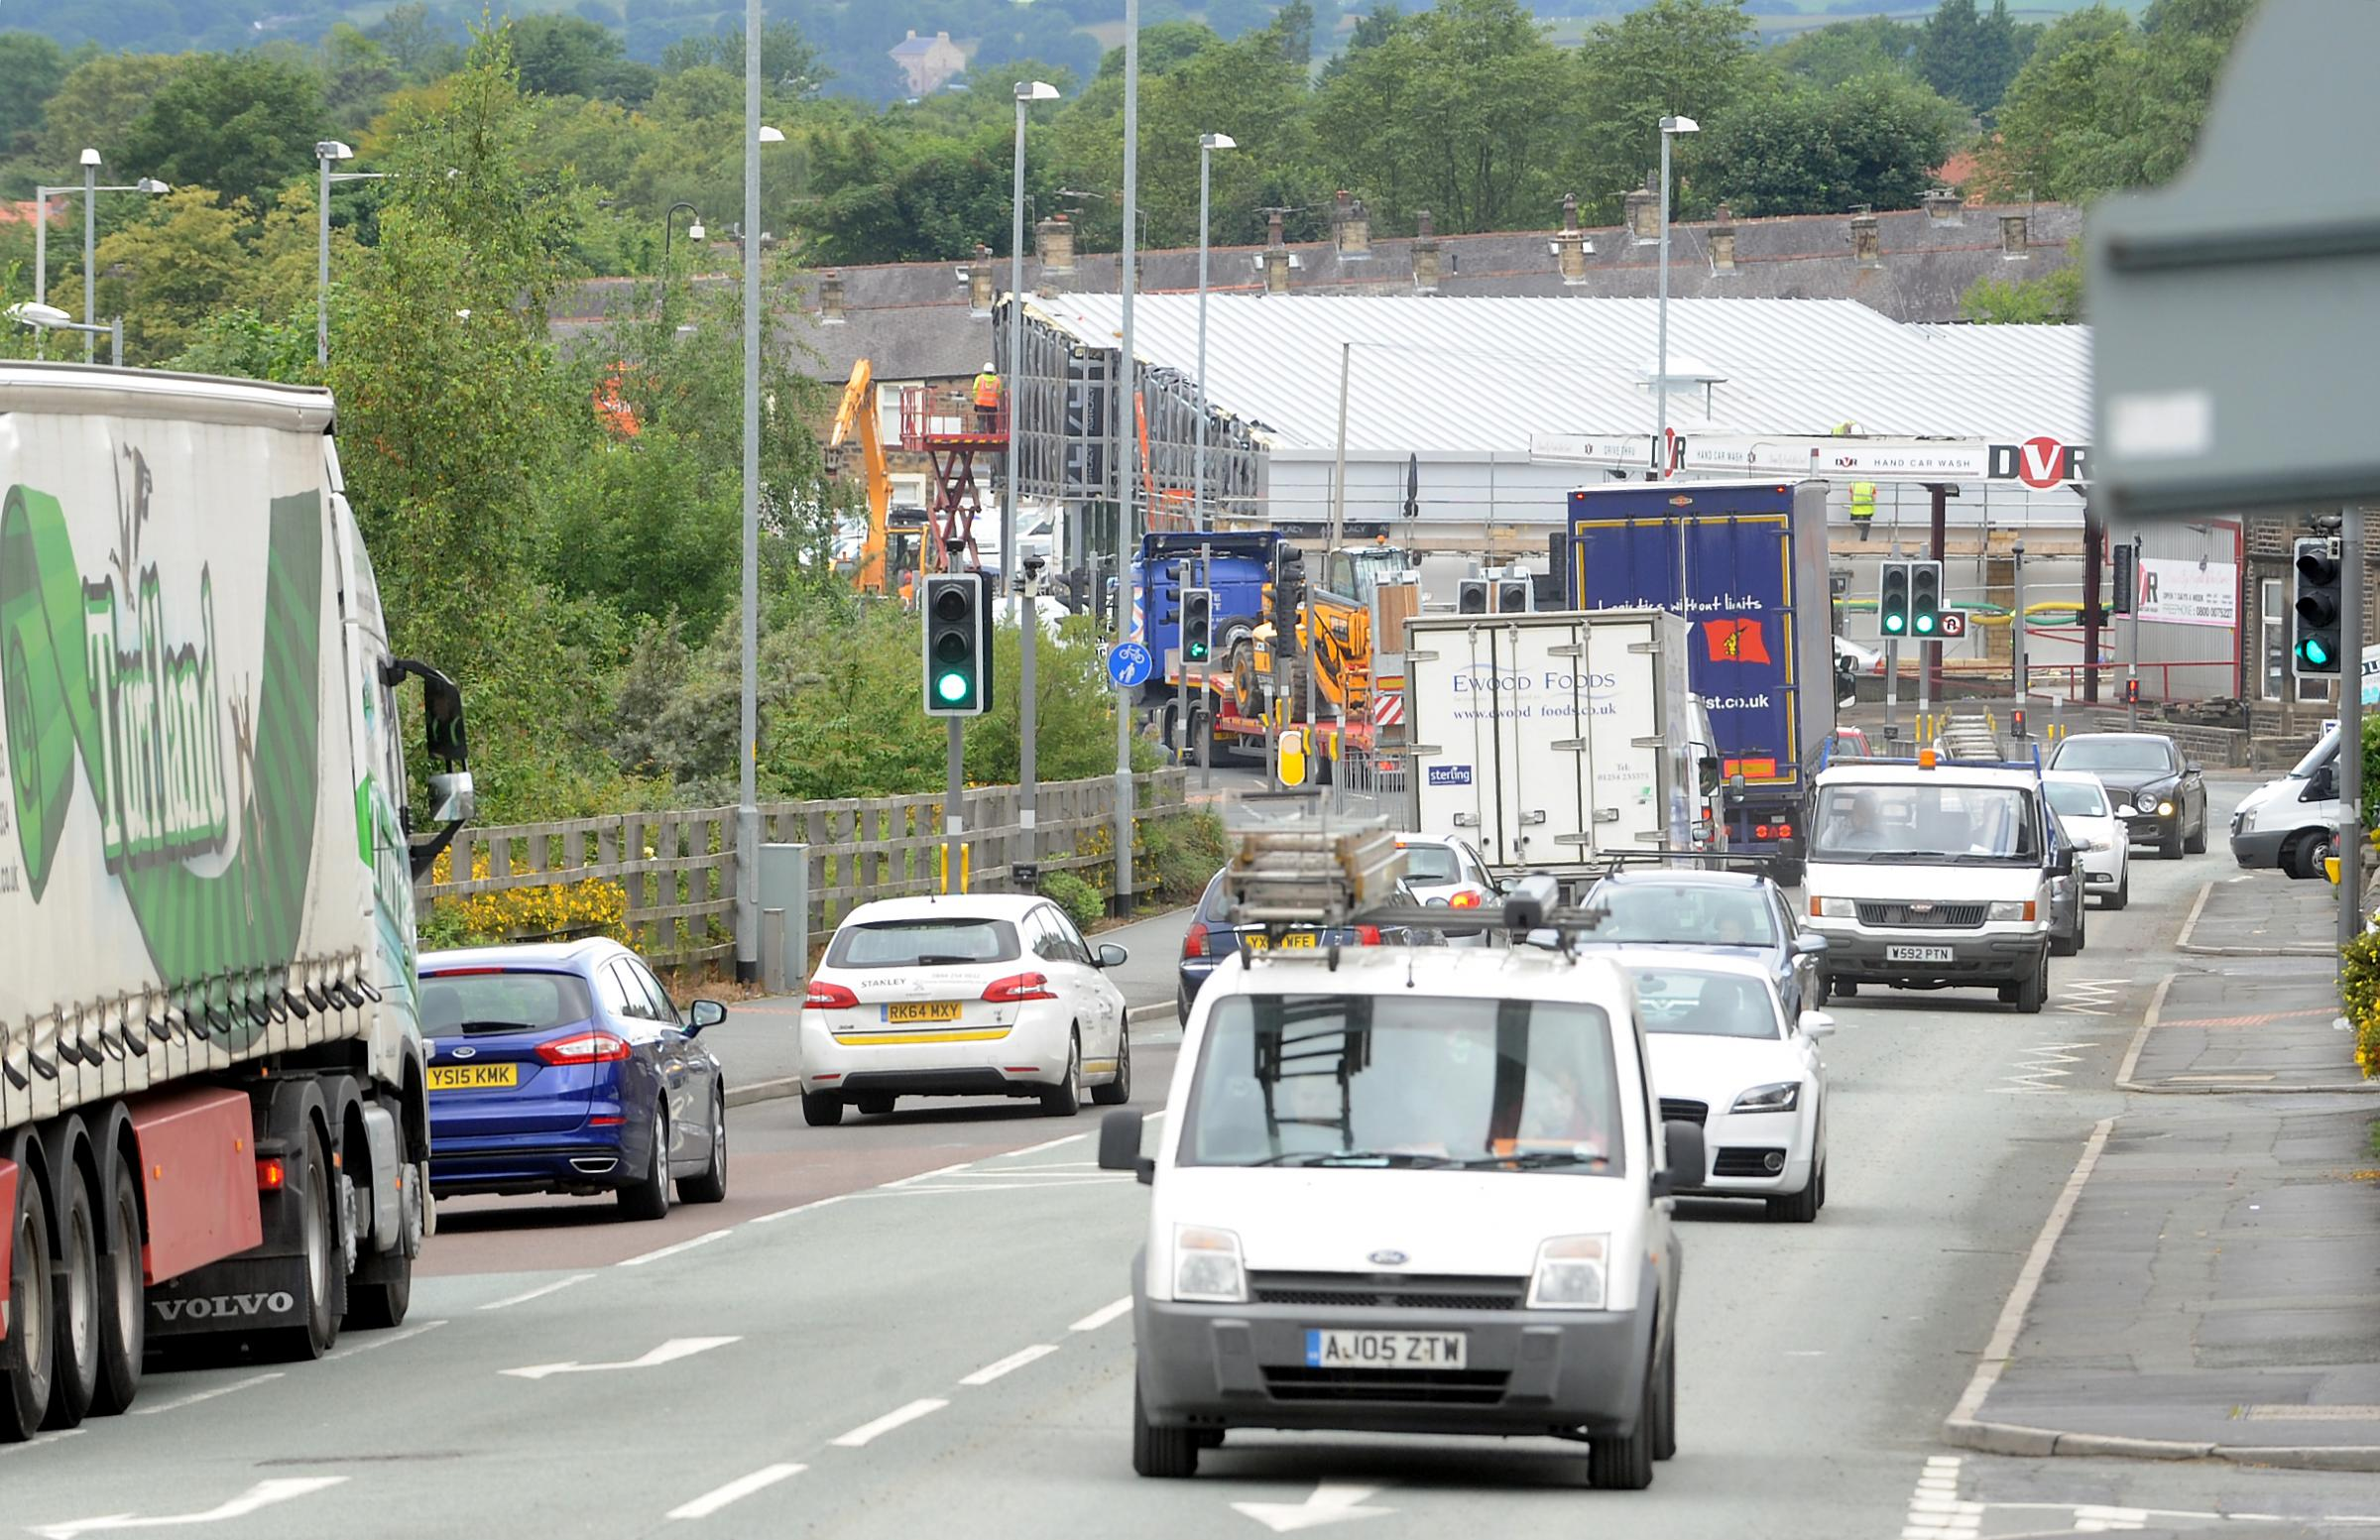 Helen Brown    30.07.15..Solid traffic along North Valley Road, Colne, which can cause great delays..